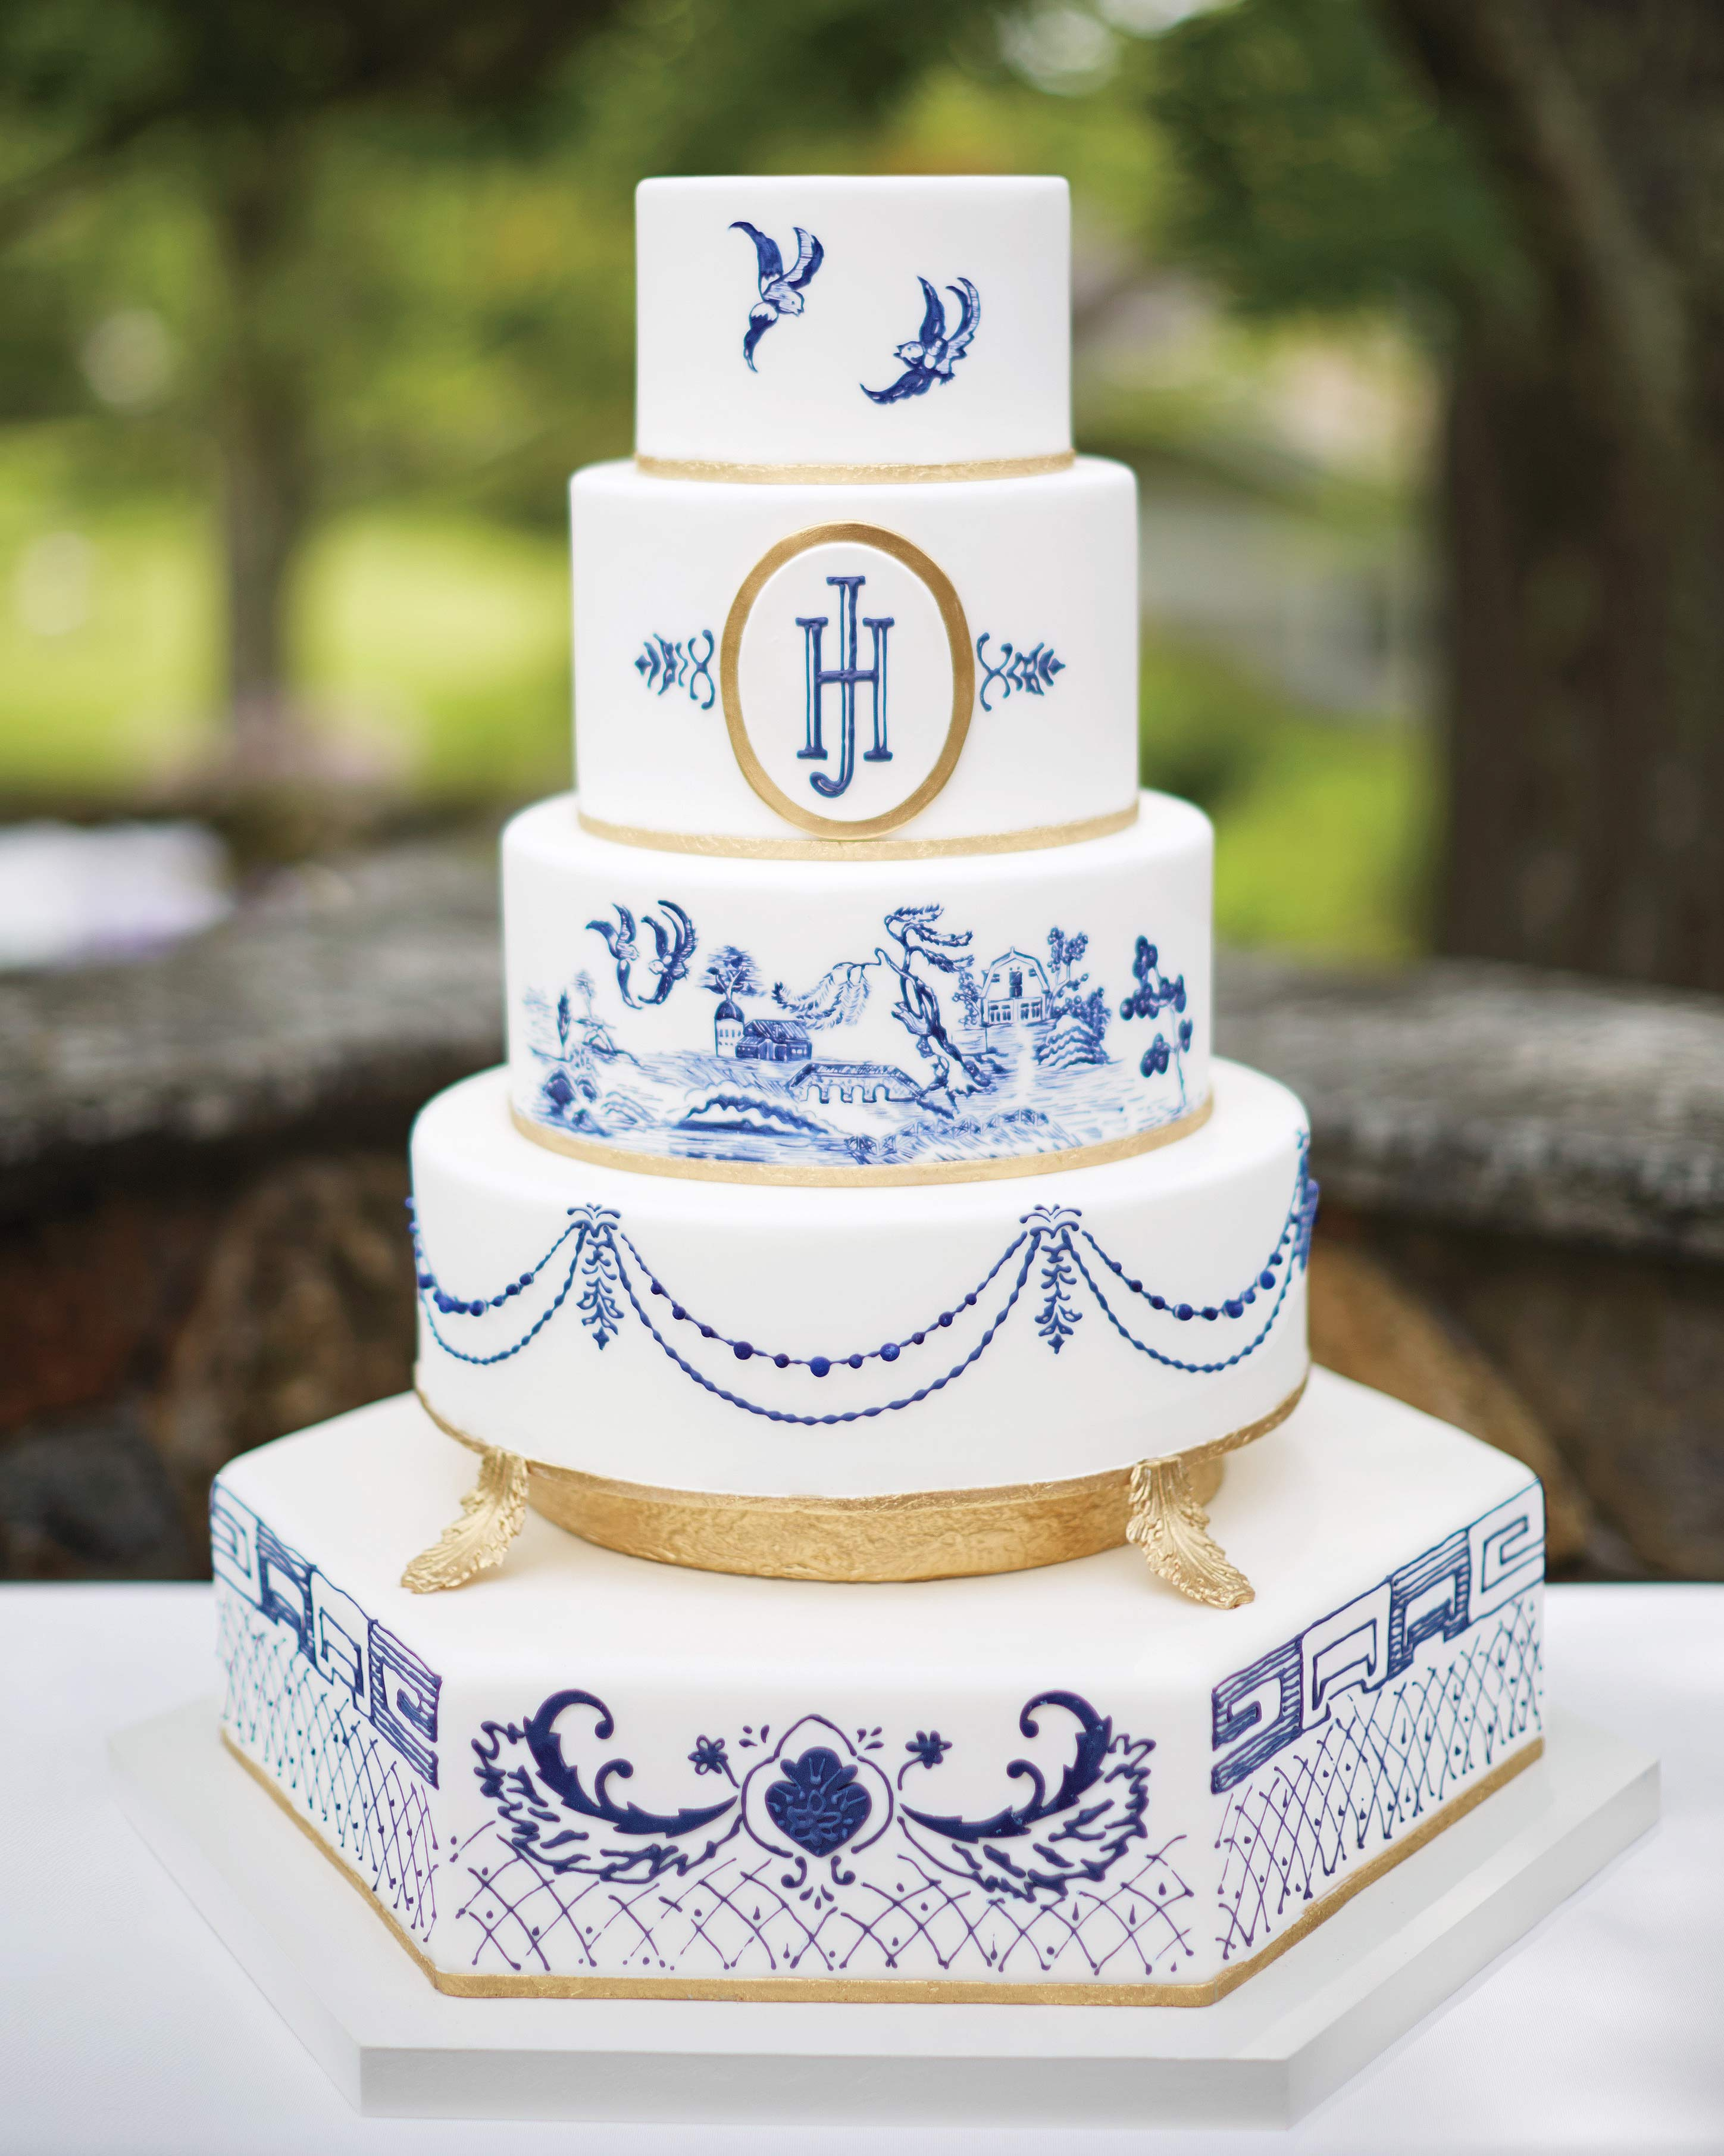 mhonor-jay-wedding-connecticut-elegant-wedding-cake-081-d112238.jpg